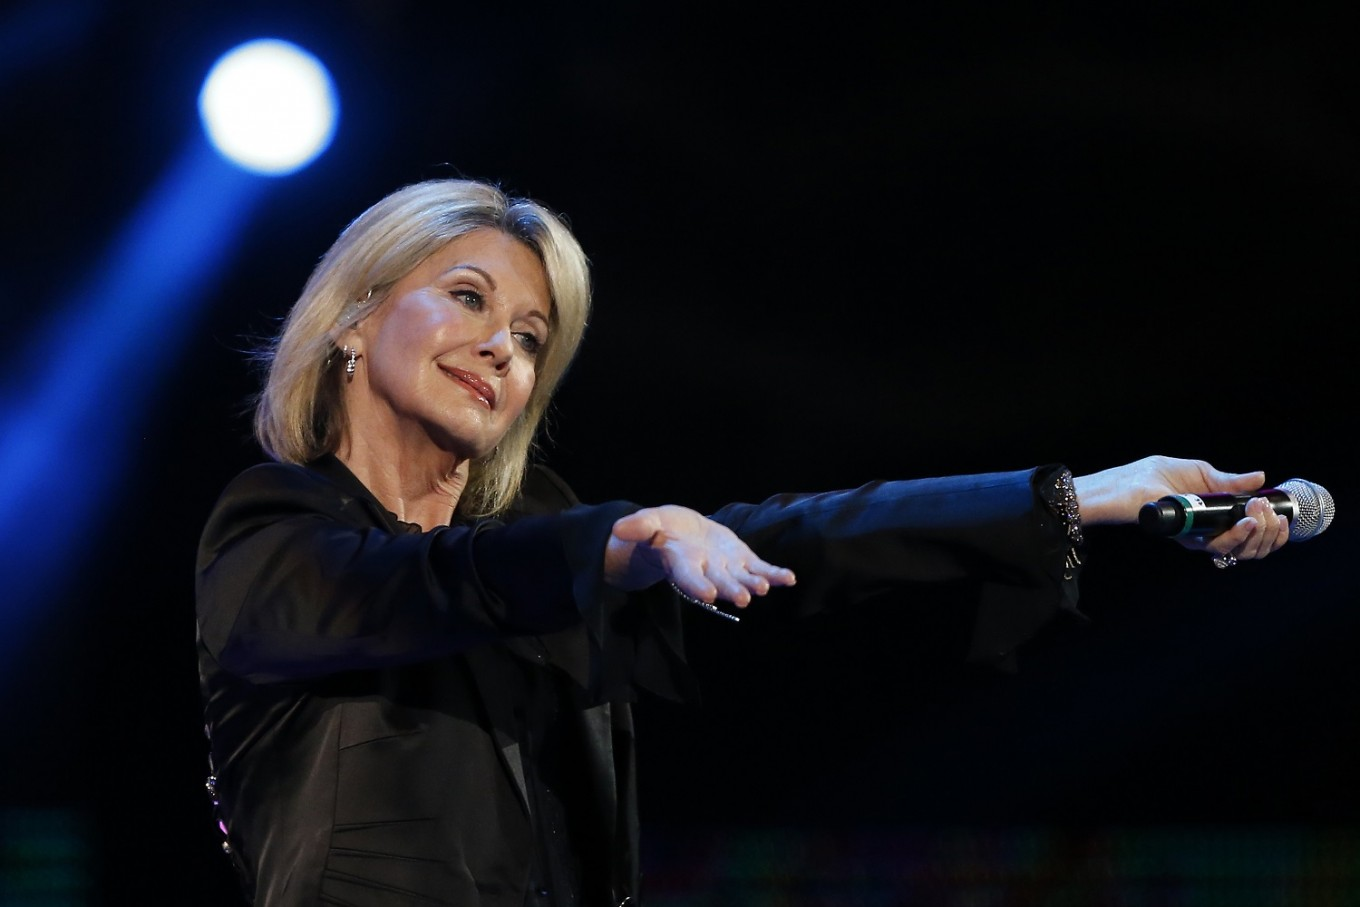 Olivia Newton-John diagnosed with cancer for third time